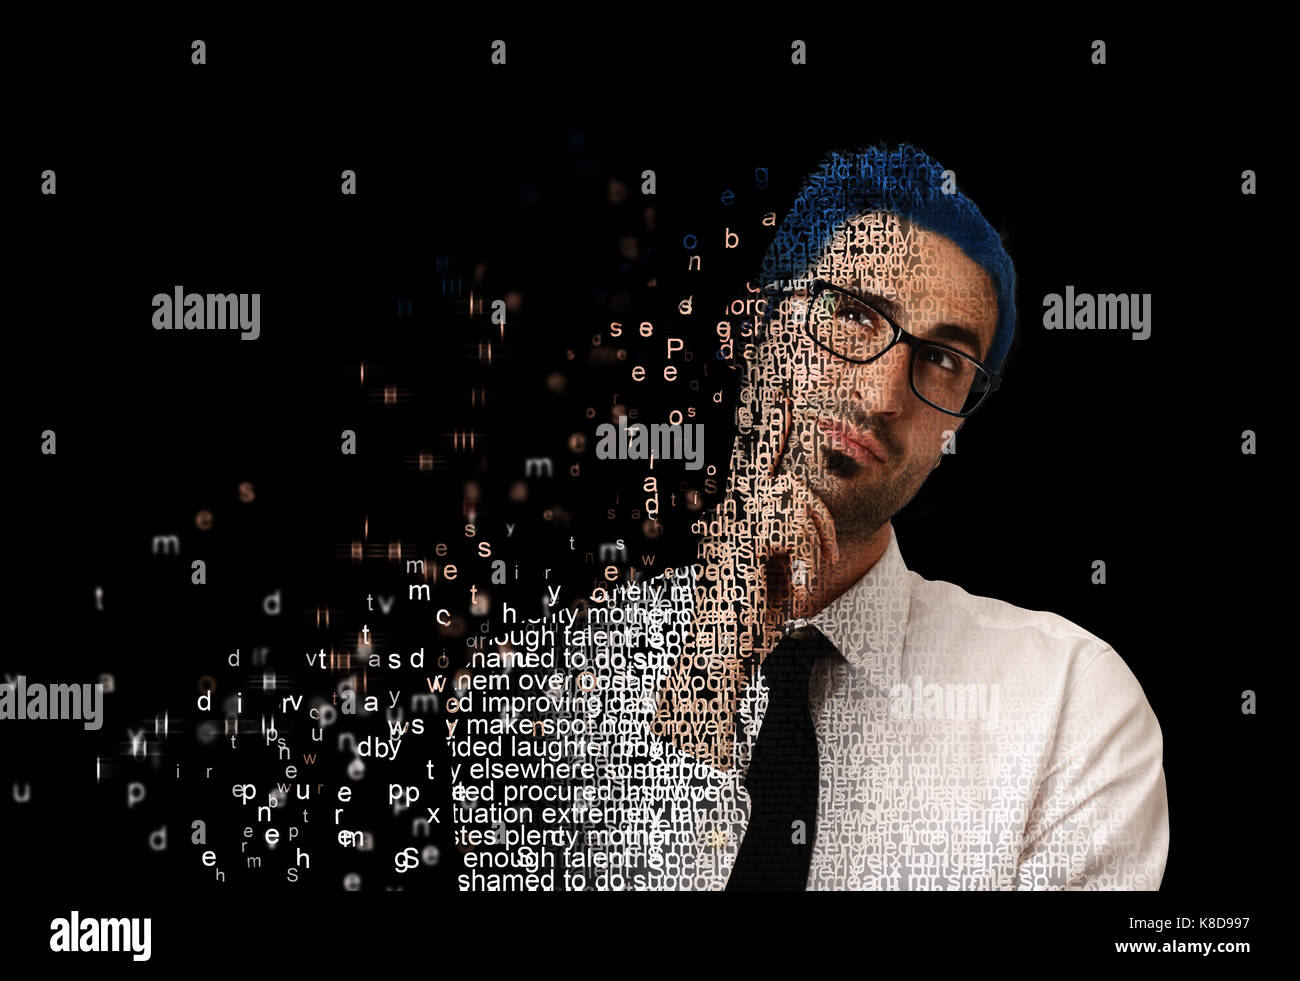 Digital man with code - Stock Image